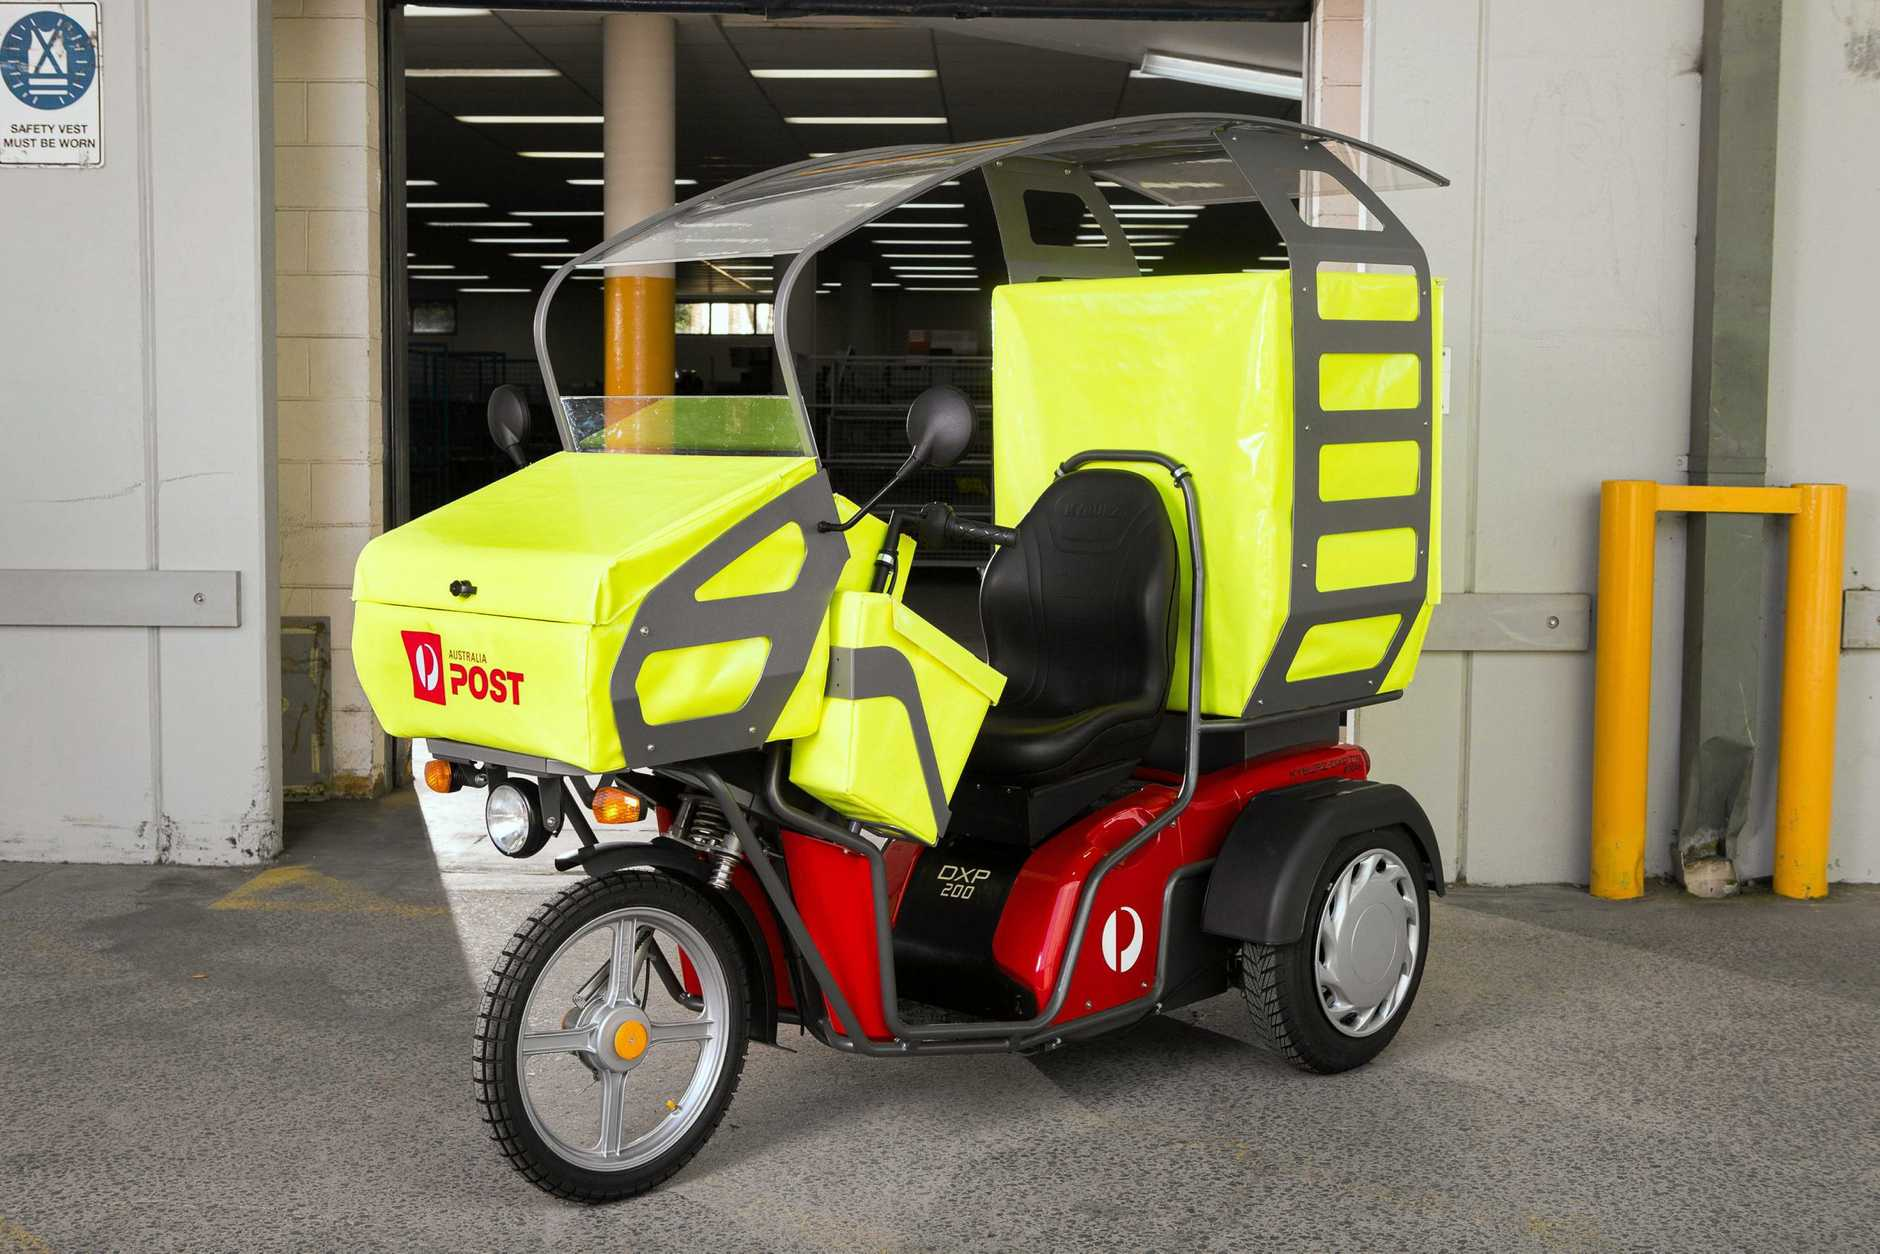 ENVIRONMENTALLY FRIENDLY: Australia Post plans to trial the electric delivery vehicle across Australia.